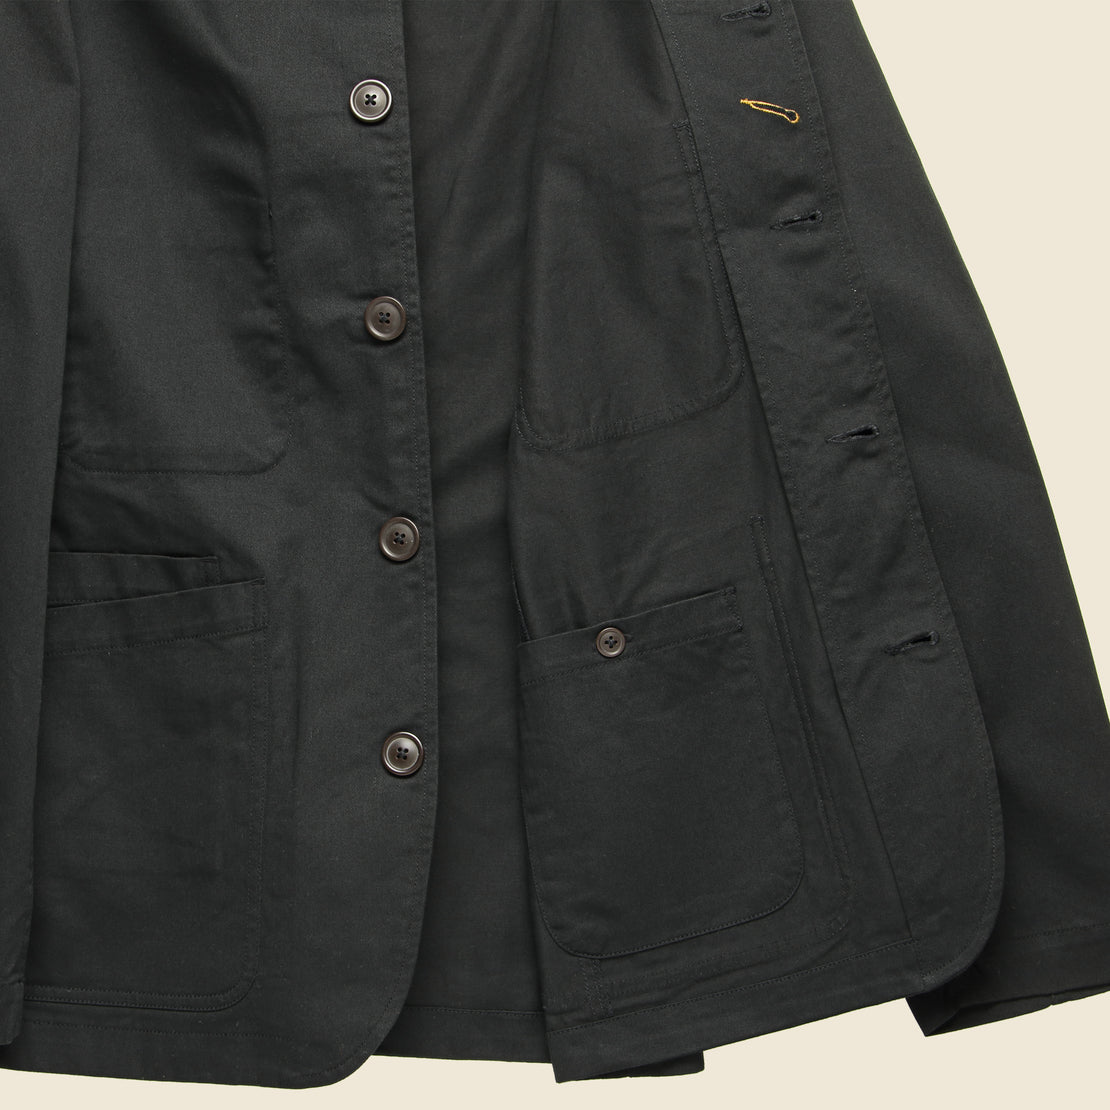 Twill Bakers Jacket - Black